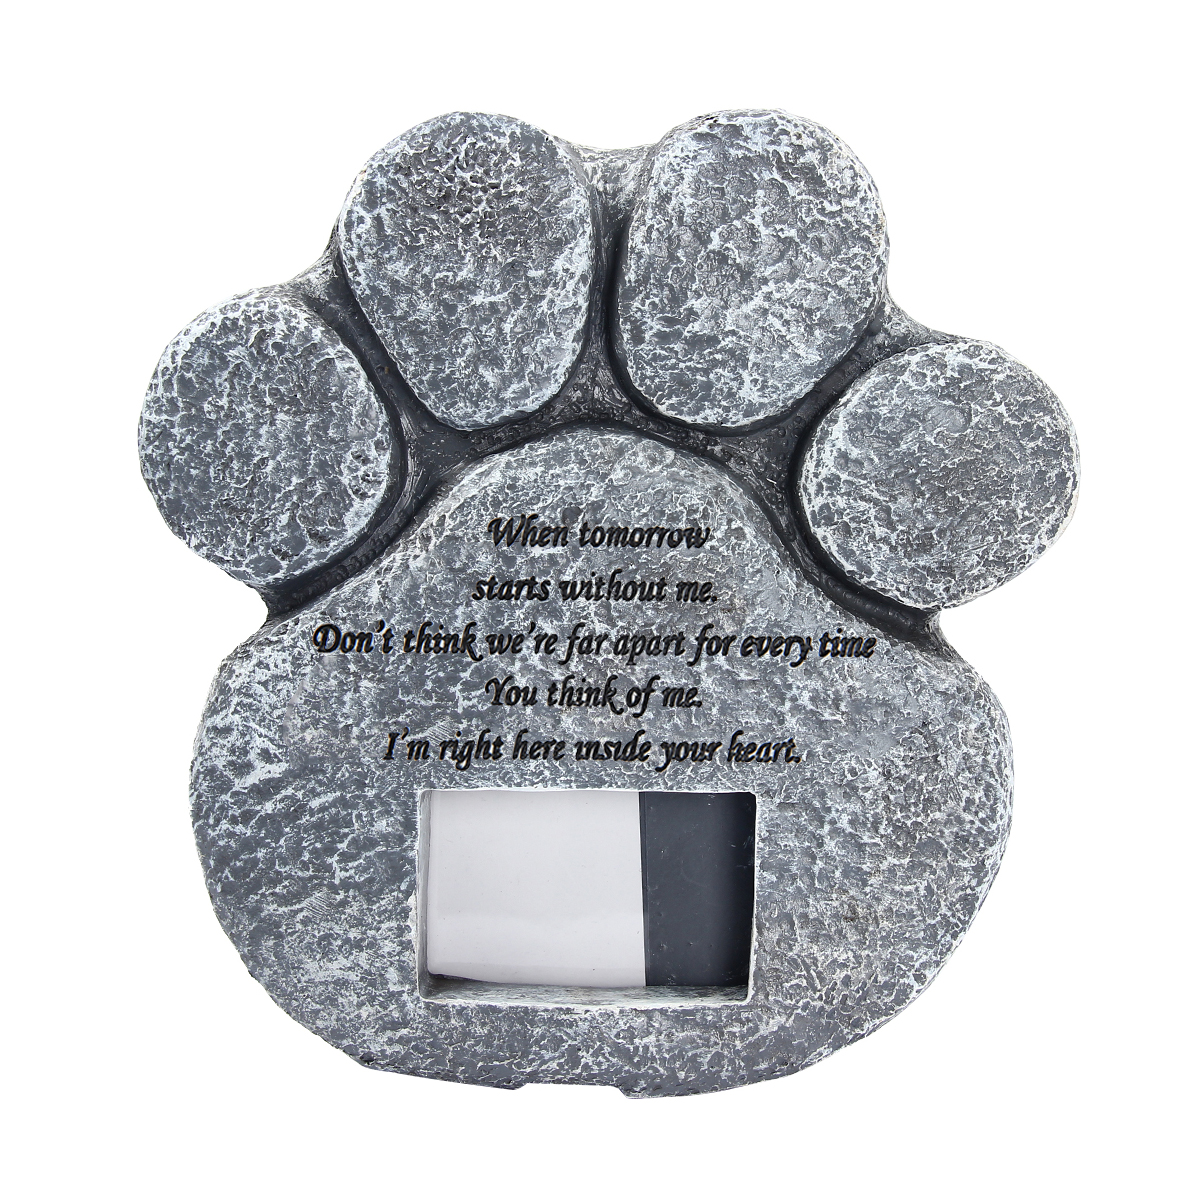 Pet Memorial Stone Paw Print Photo Frame Grave Pet Monument Tombstone For Dogs Cats Animal Funeral Tombstone